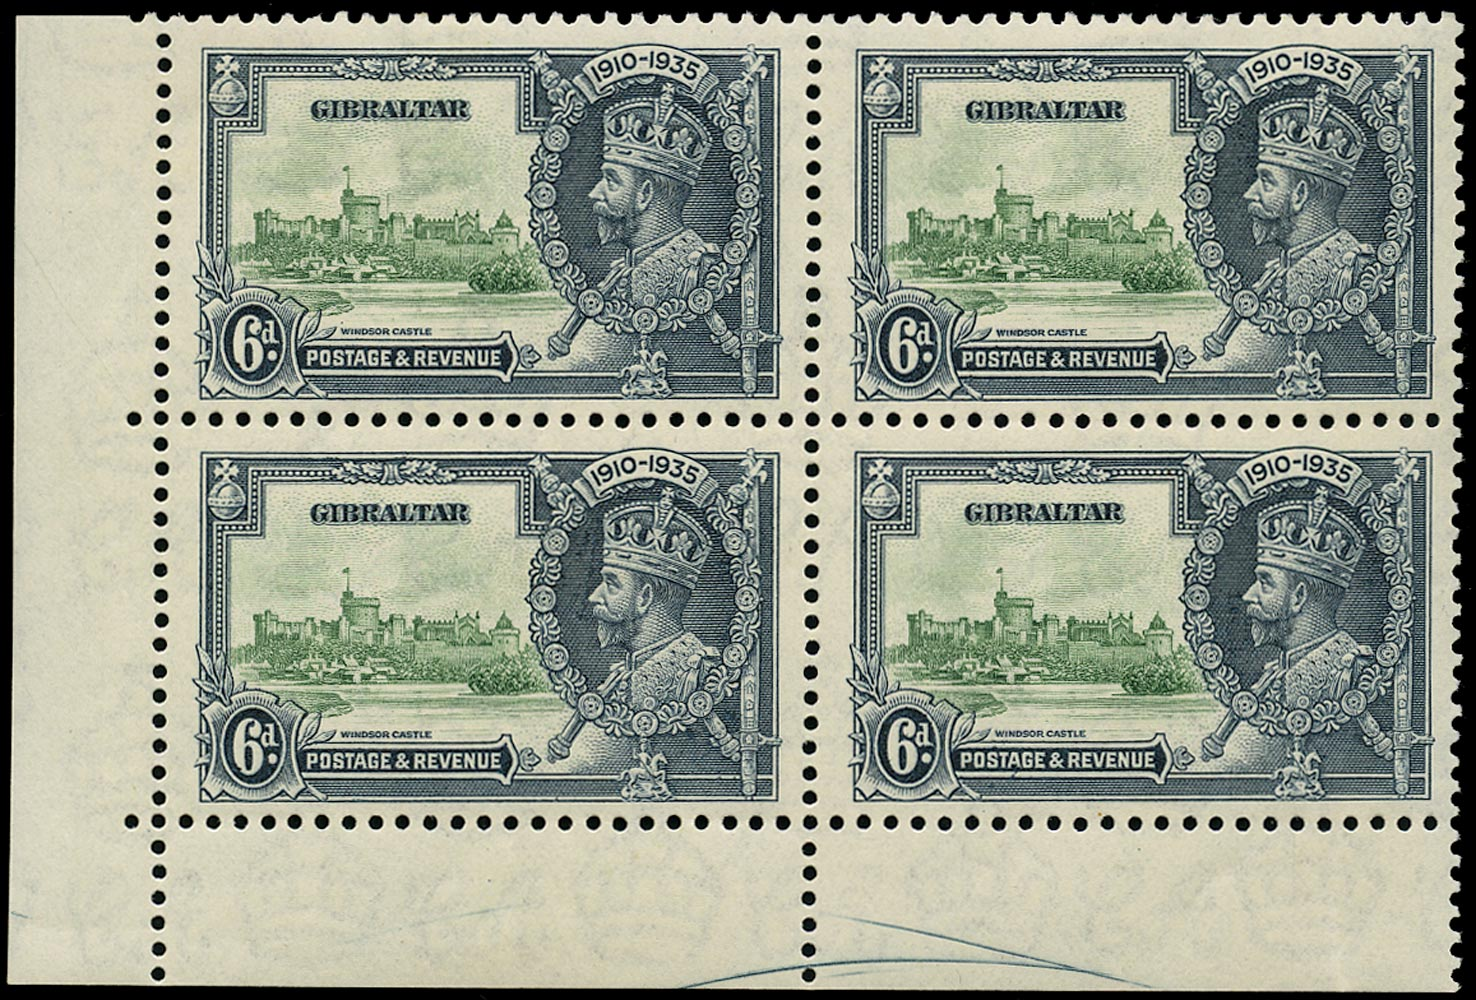 GIBRALTAR 1935  SG116a Mint Silver Jubilee 6d green and indigo variety Extra flagstaff